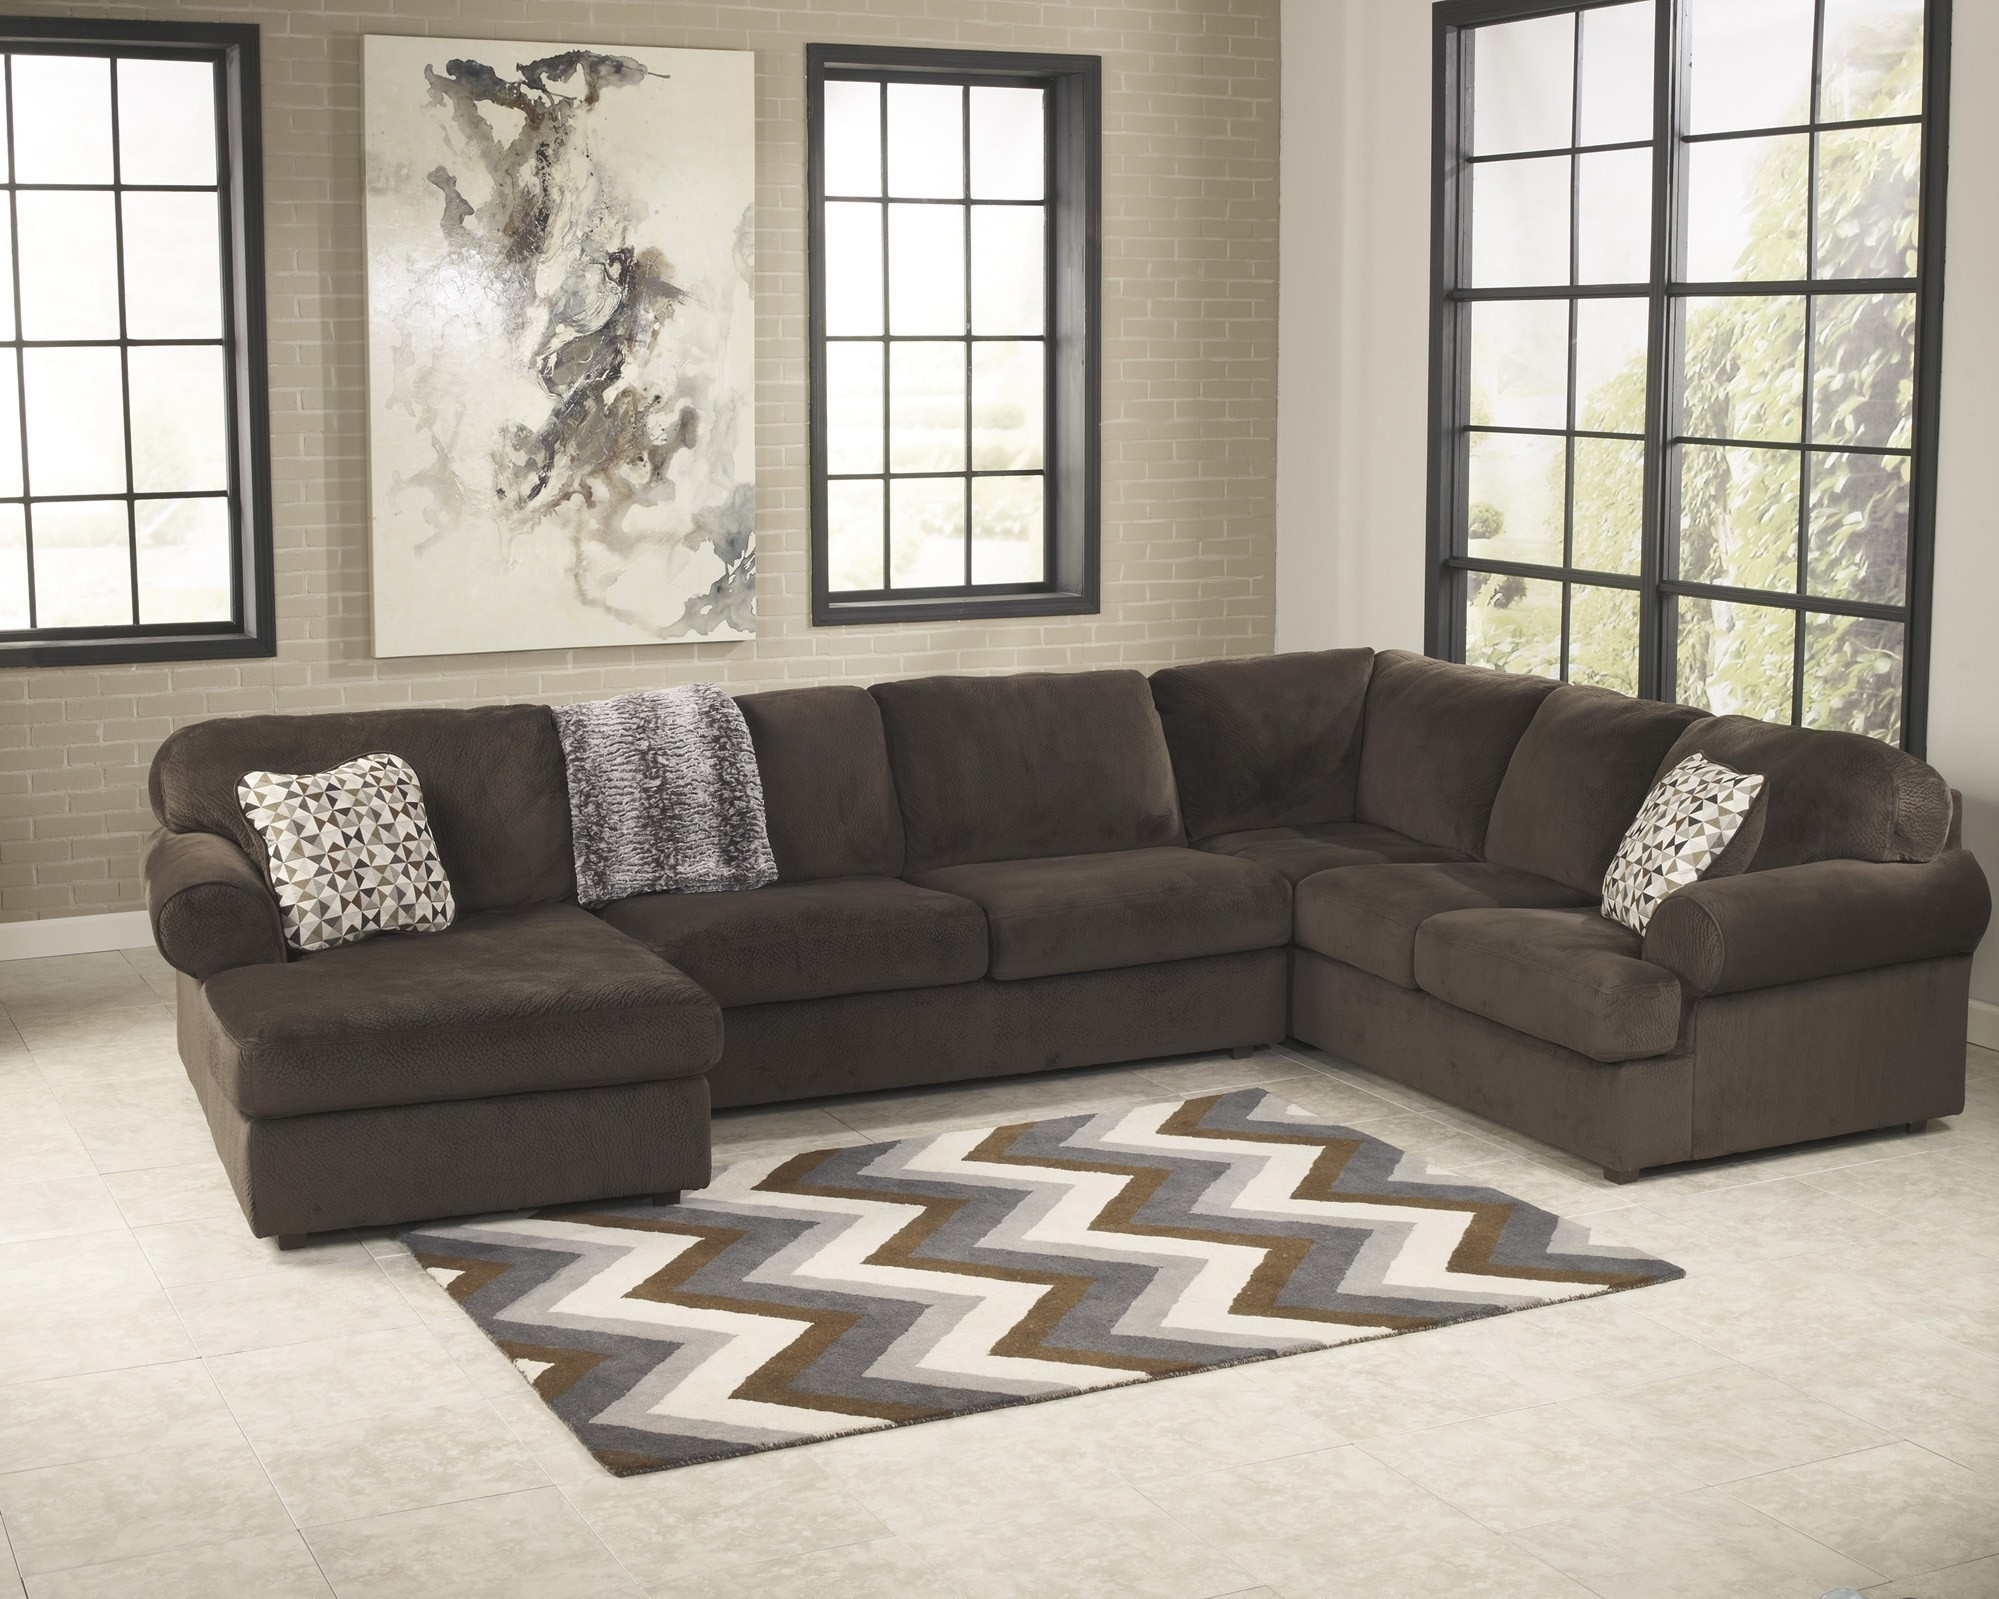 3 Piece Sectional Malbry Point W Laf Chaise Living Spaces 223533 0 Pertaining To Malbry Point 3 Piece Sectionals With Raf Chaise (Photo 12 of 25)